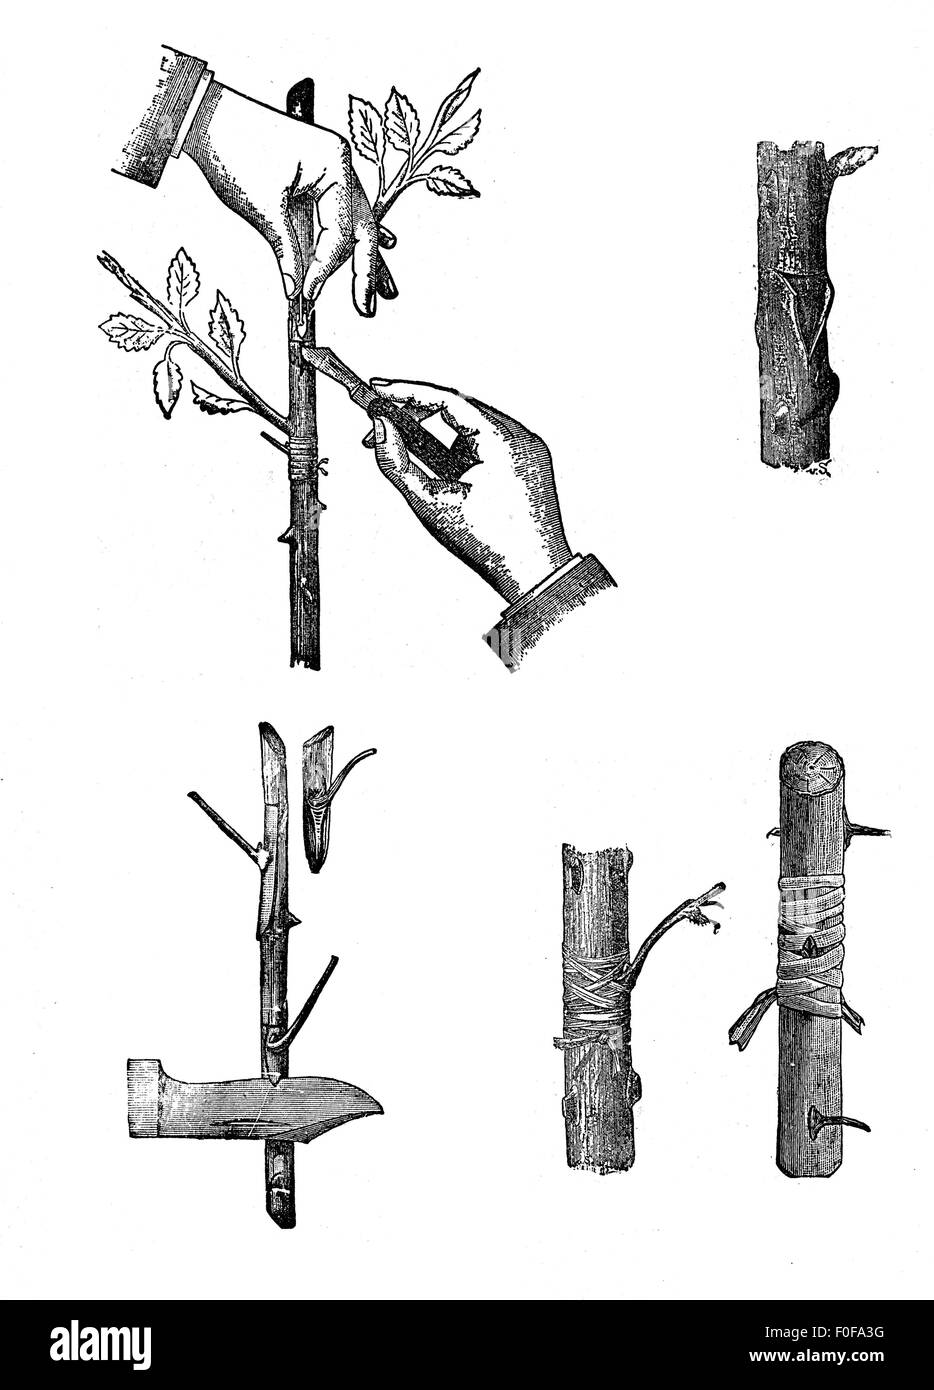 Horticulture engraving - grafting techniques.  Grafting  is a horticultural technique whereby tissues from one plant - Stock Image